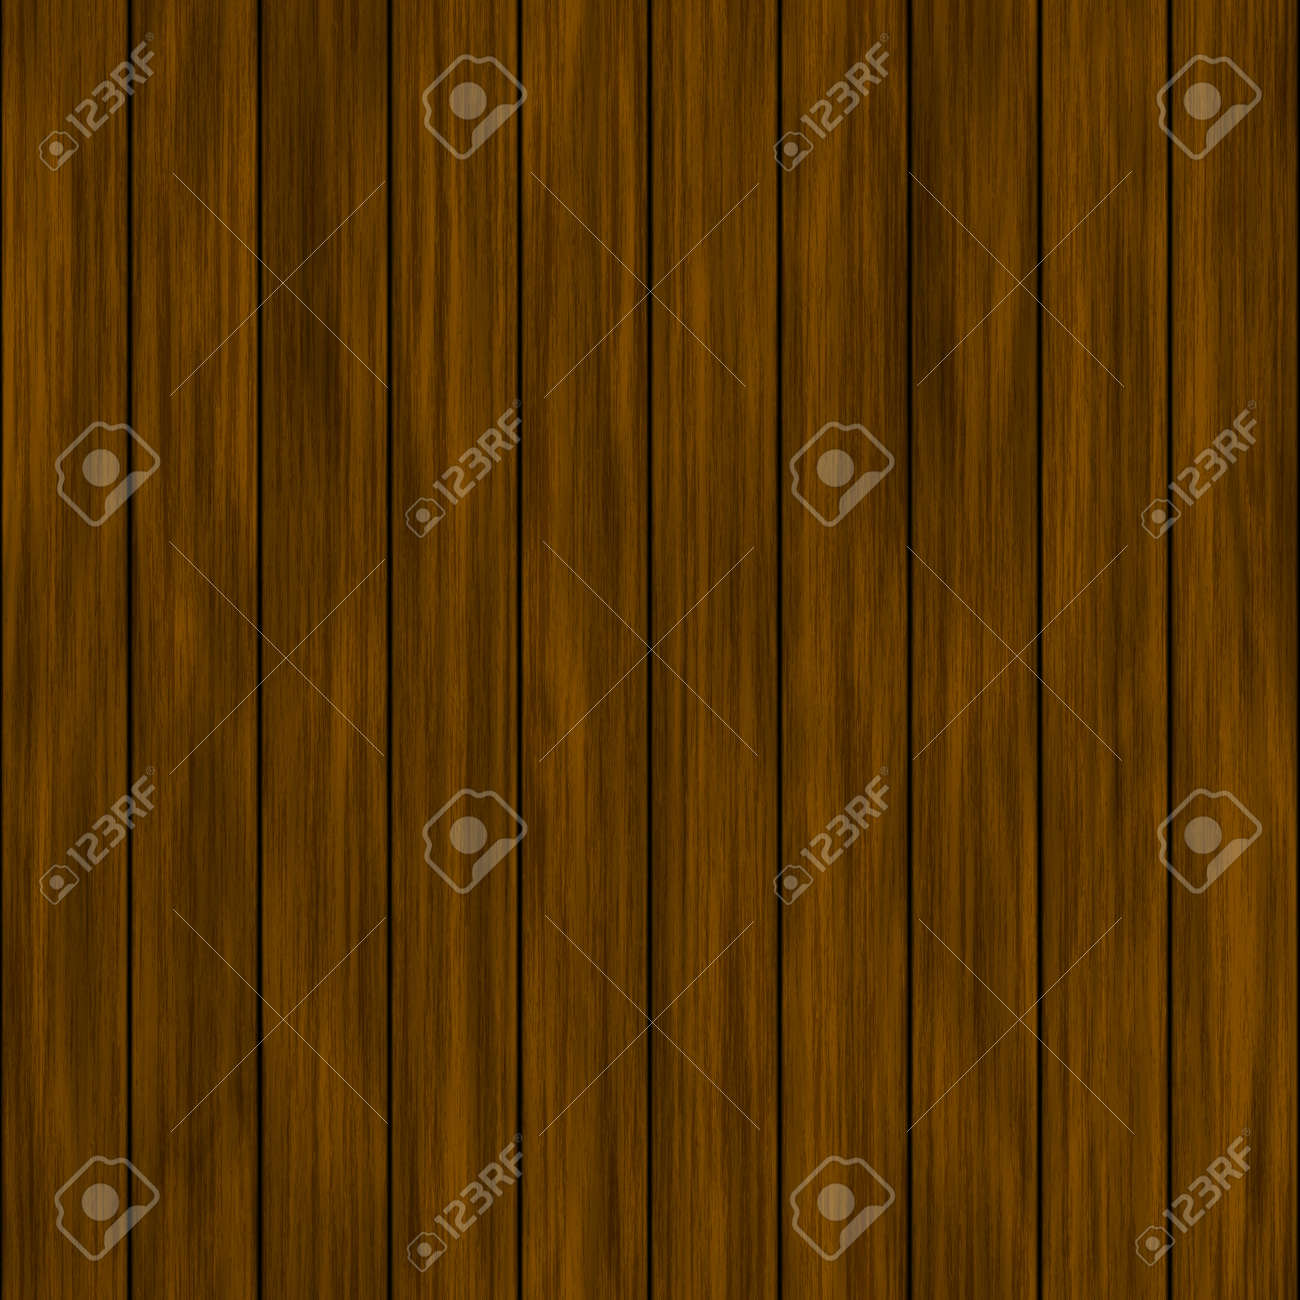 Wood Furniture Texture wood furniture texture seamless